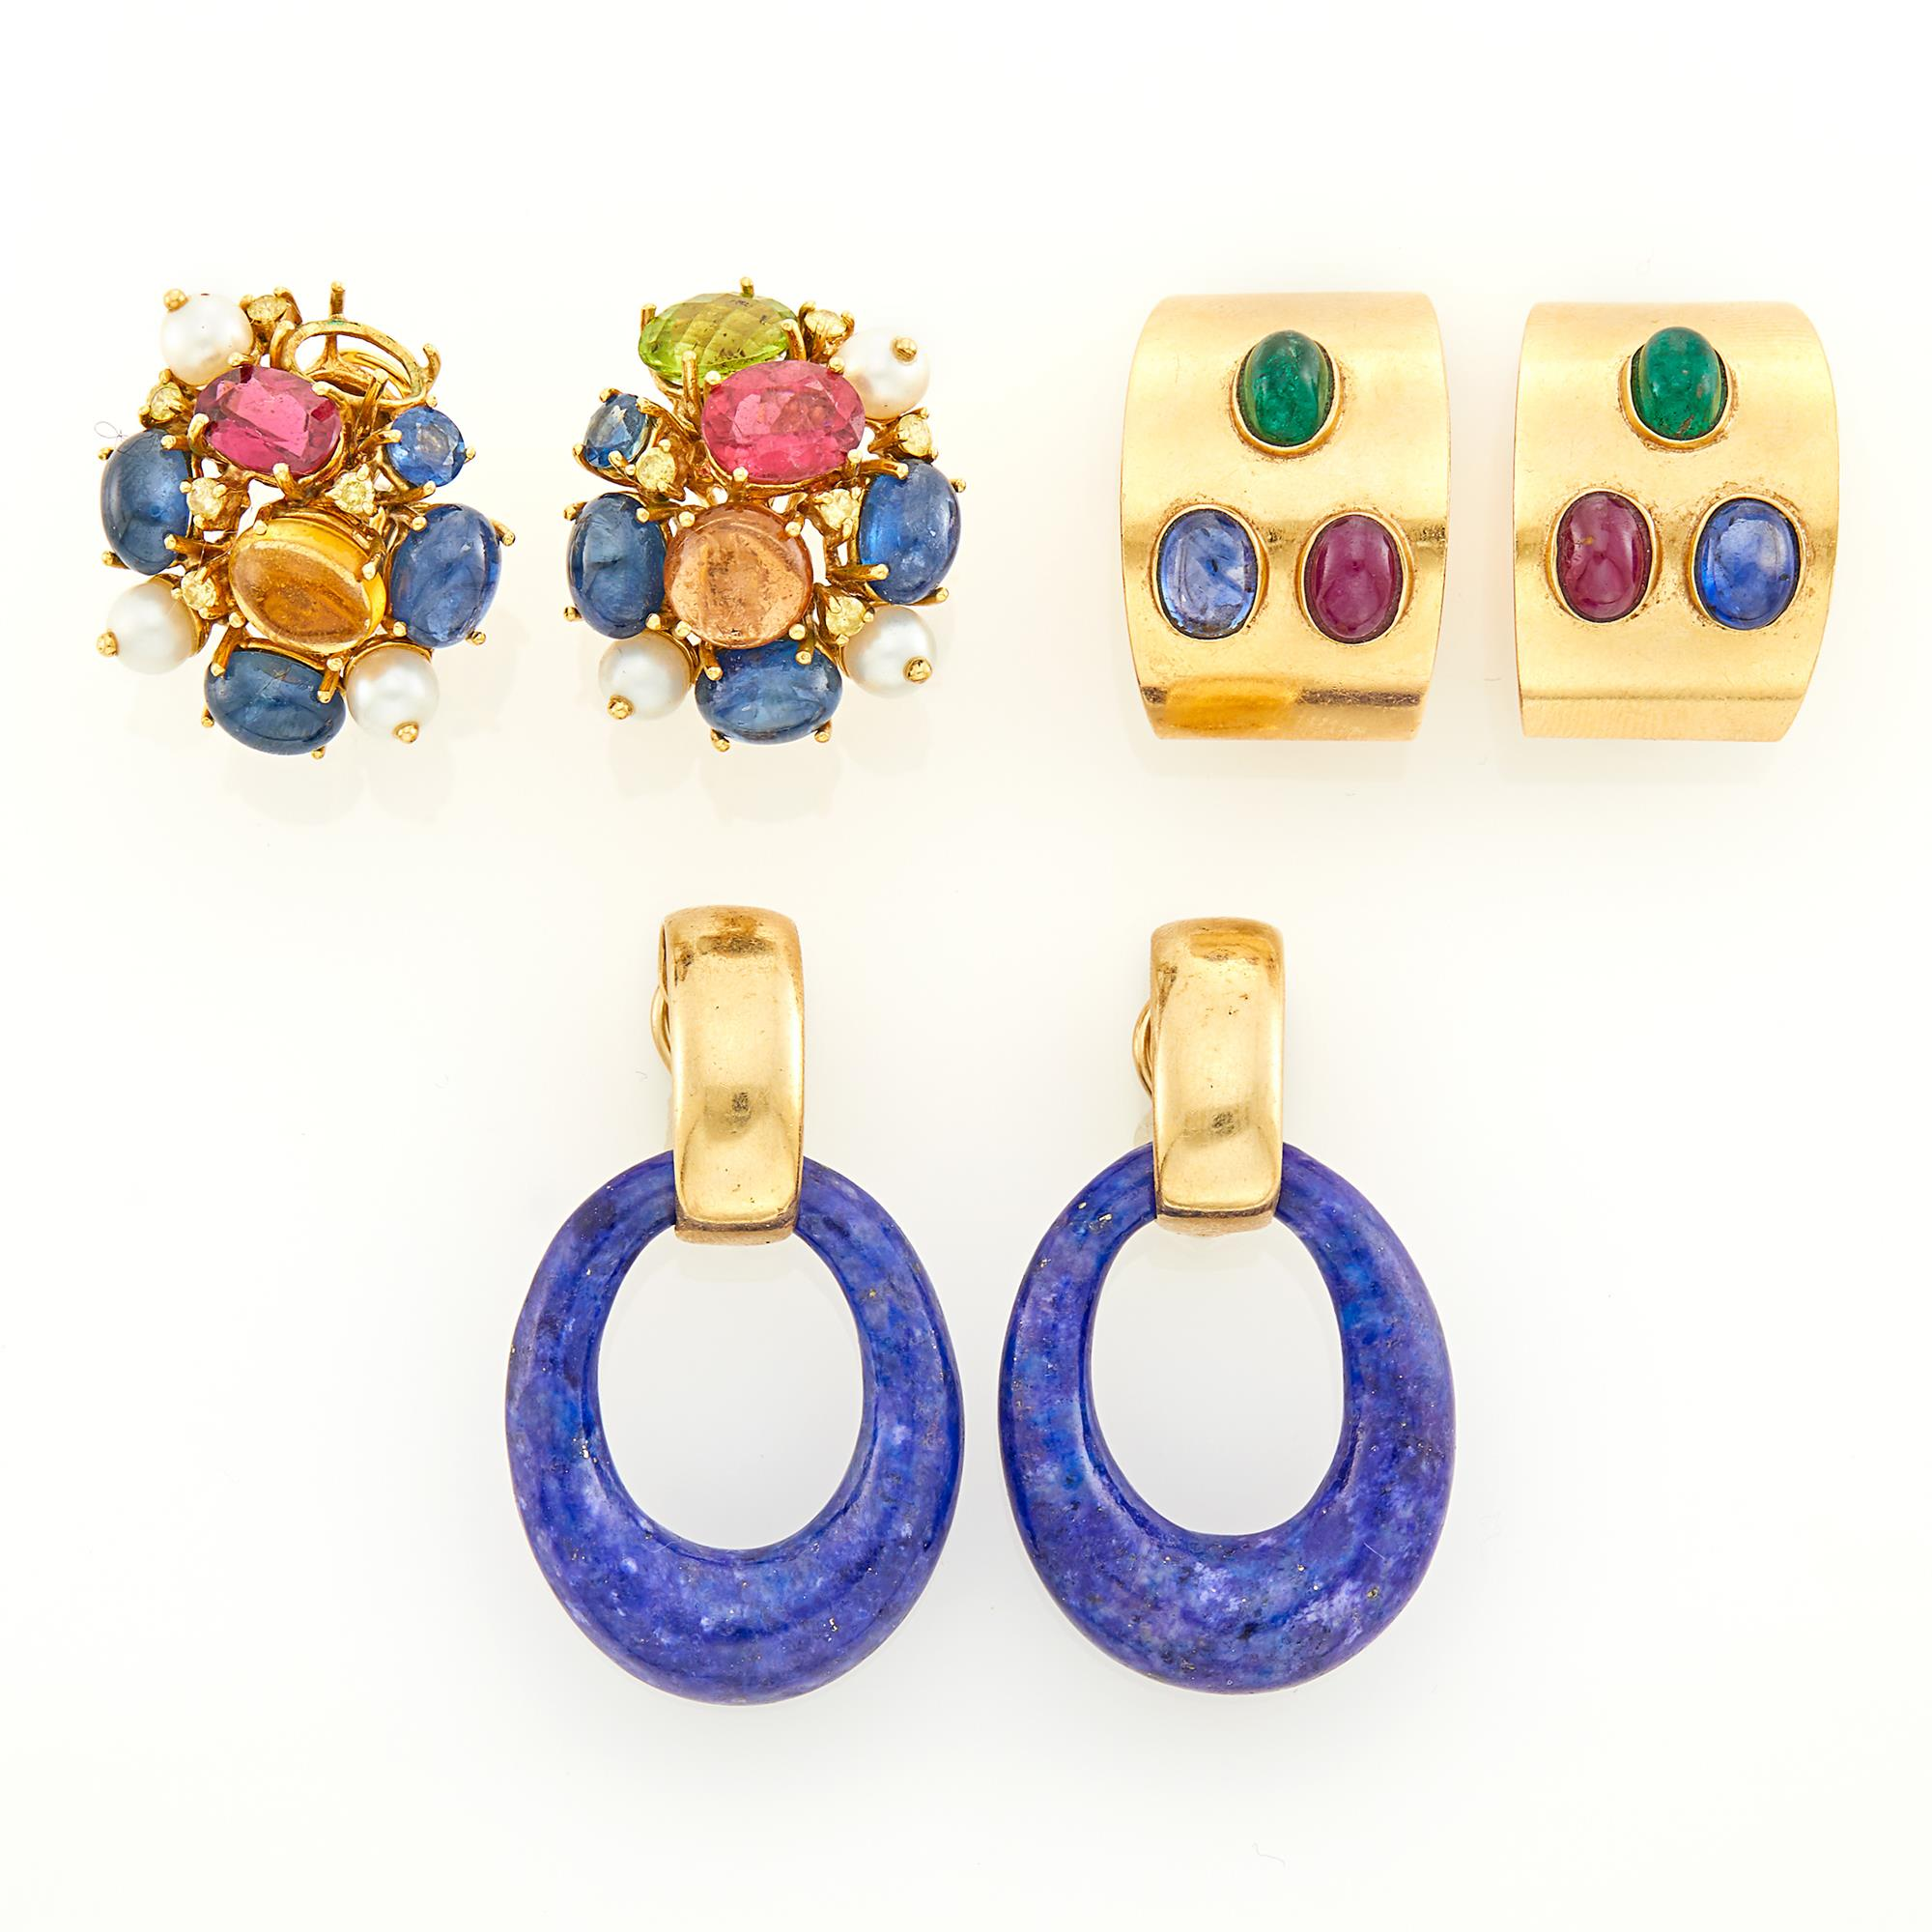 Lot image - Pair of Gold and Lapis Hoop Earrings and Two Pairs of Gem-Set Earclips